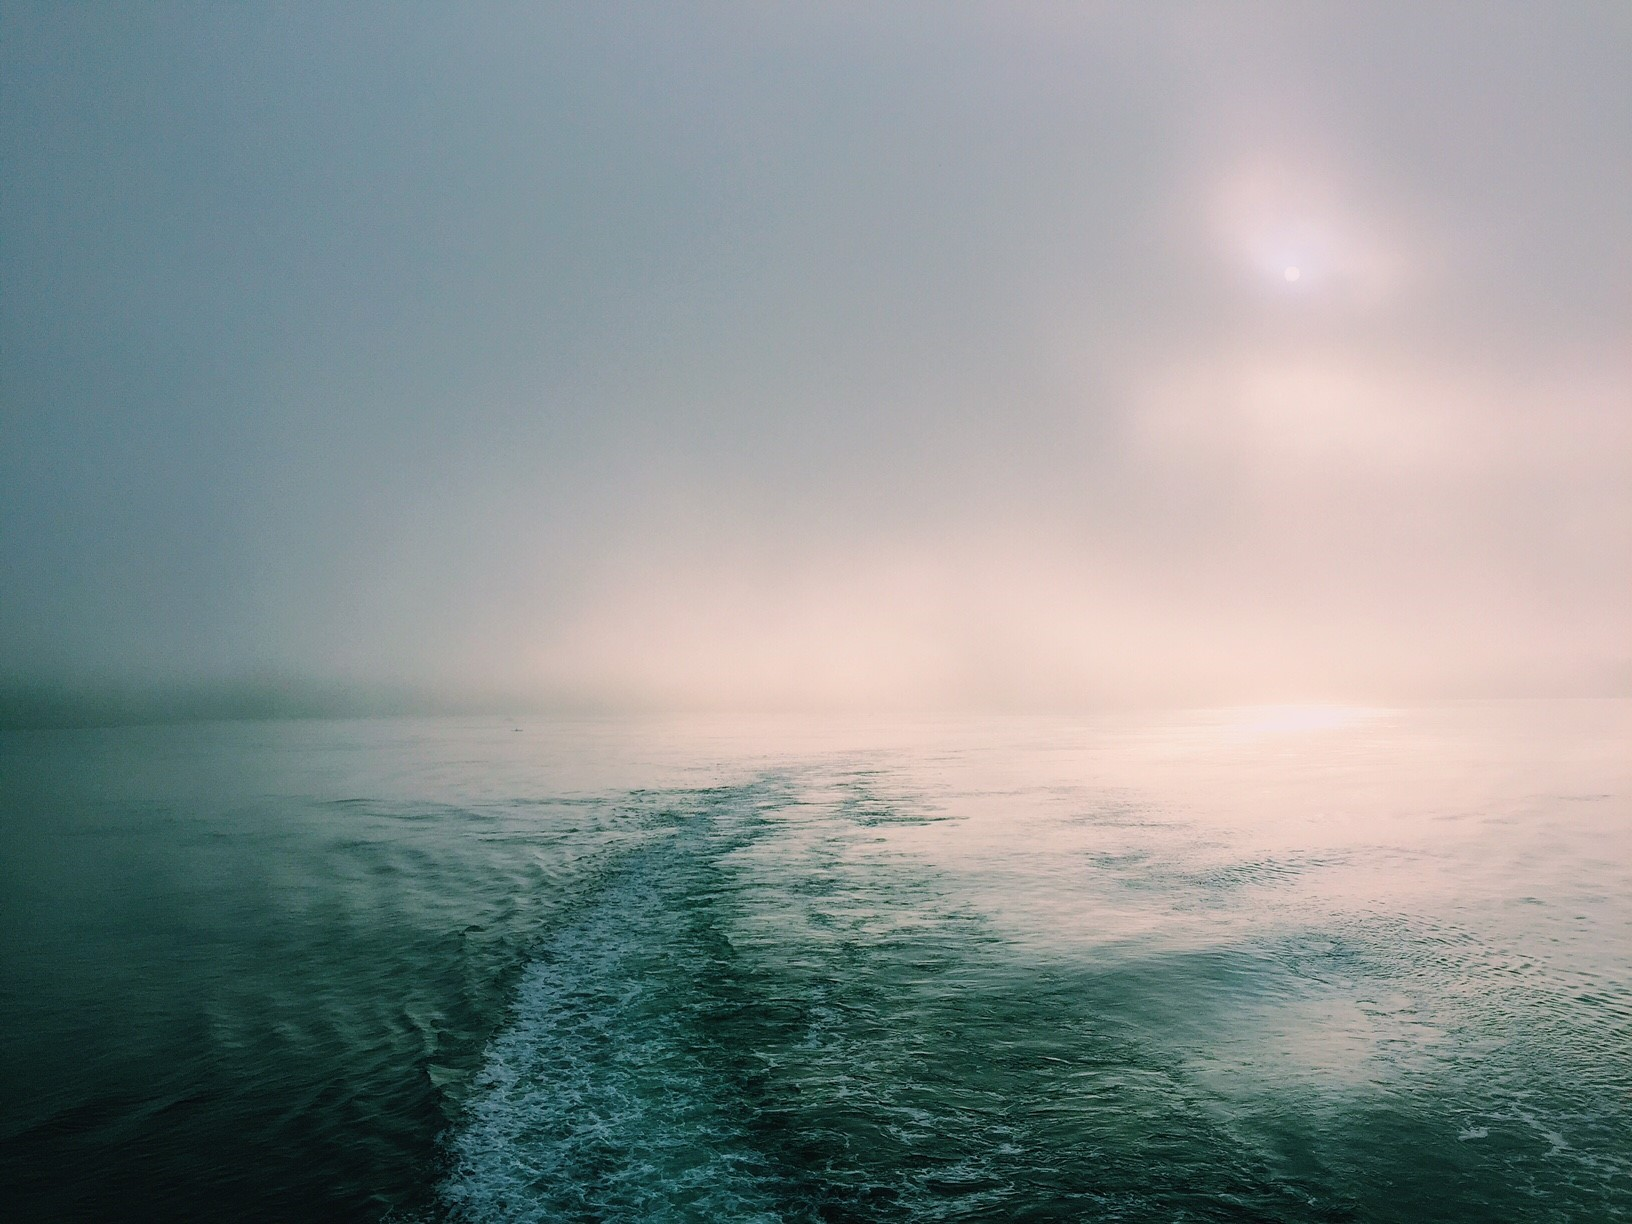 Foggy-Morning-On-the-water